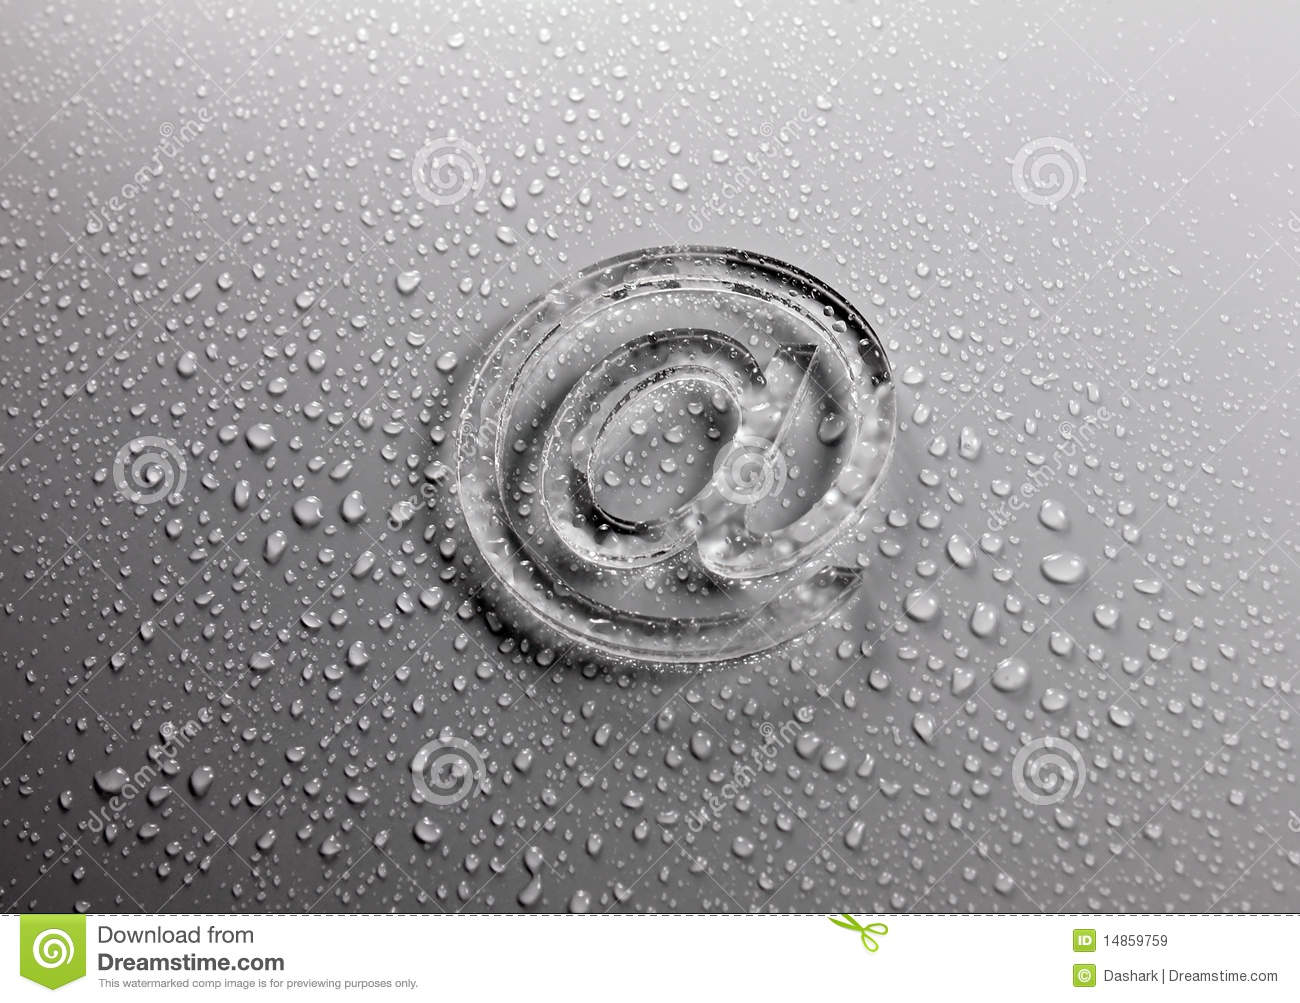 Abstract E-mail on liquid bubbles